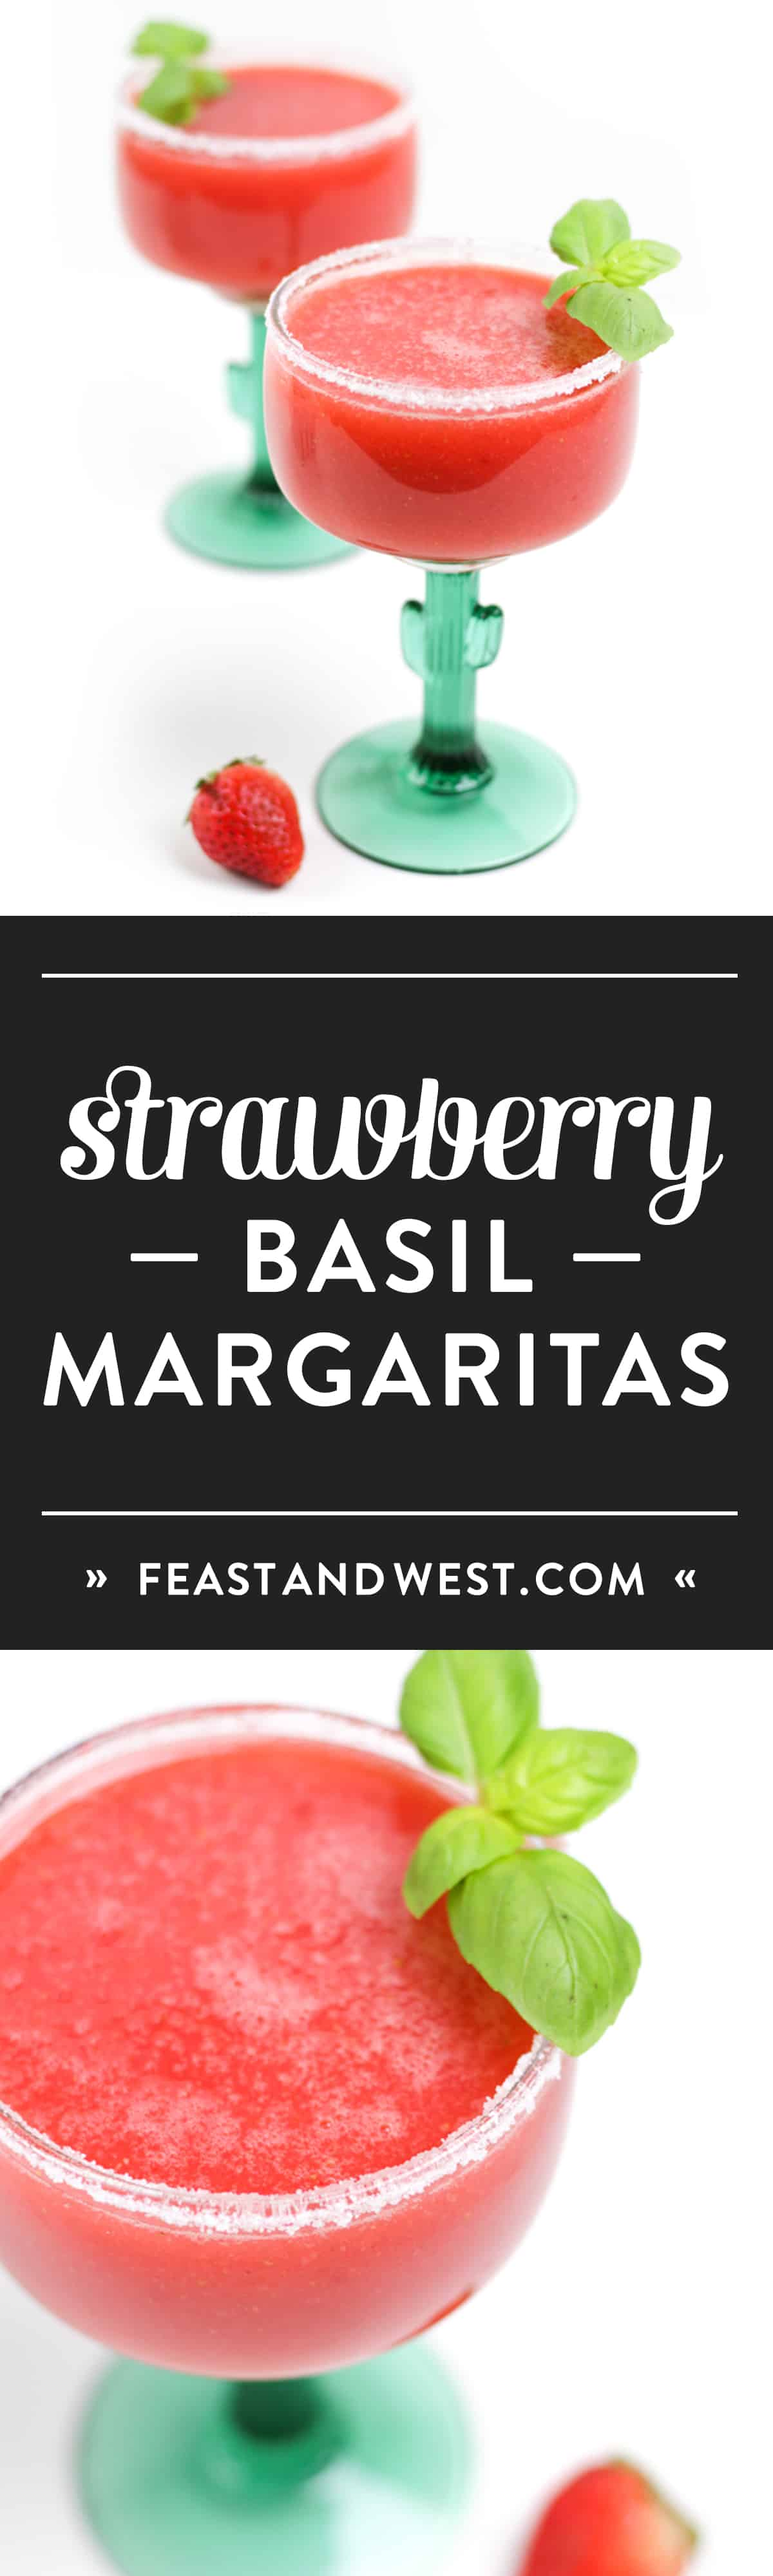 From taco night to girls' night, Strawberry Basil Margaritas are the freshest summer sippers around. With all the tastes of the farmers market, these tequila-based beauties are sure to be a fan favorite. (via feastandwest.com)